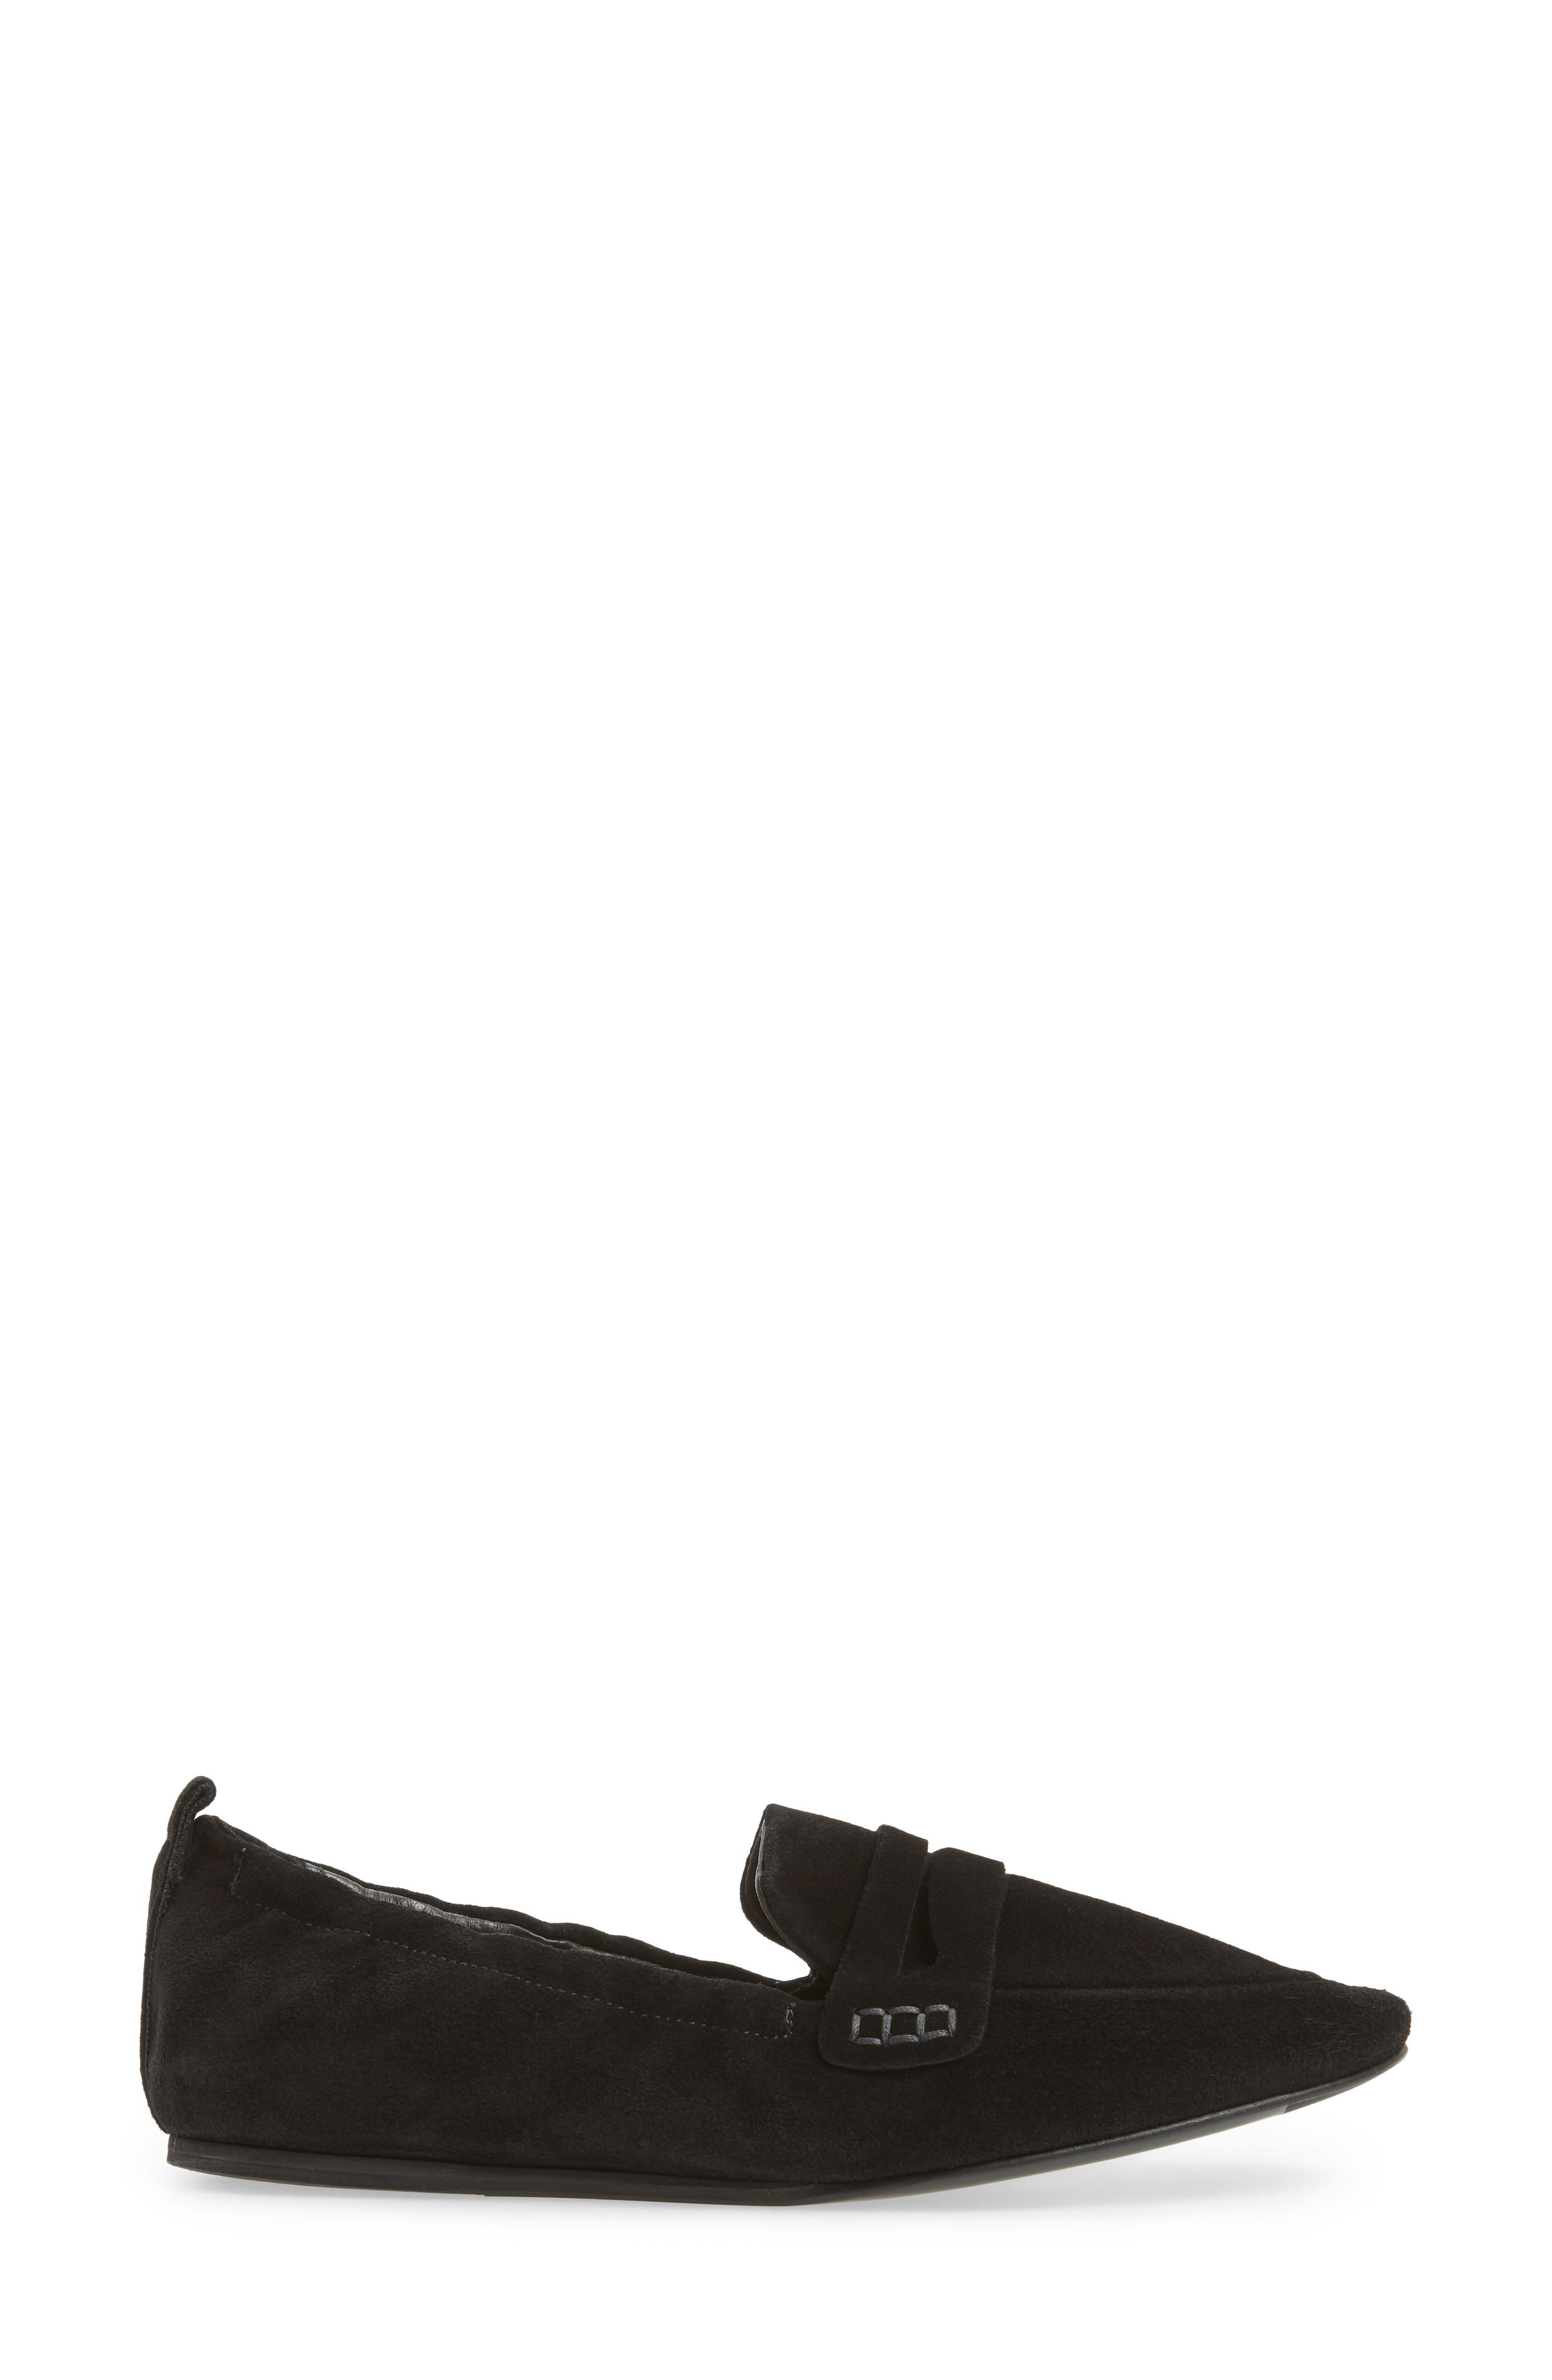 Milly Elastic Loafer Flat,                             Alternate thumbnail 3, color,                             Black Suede